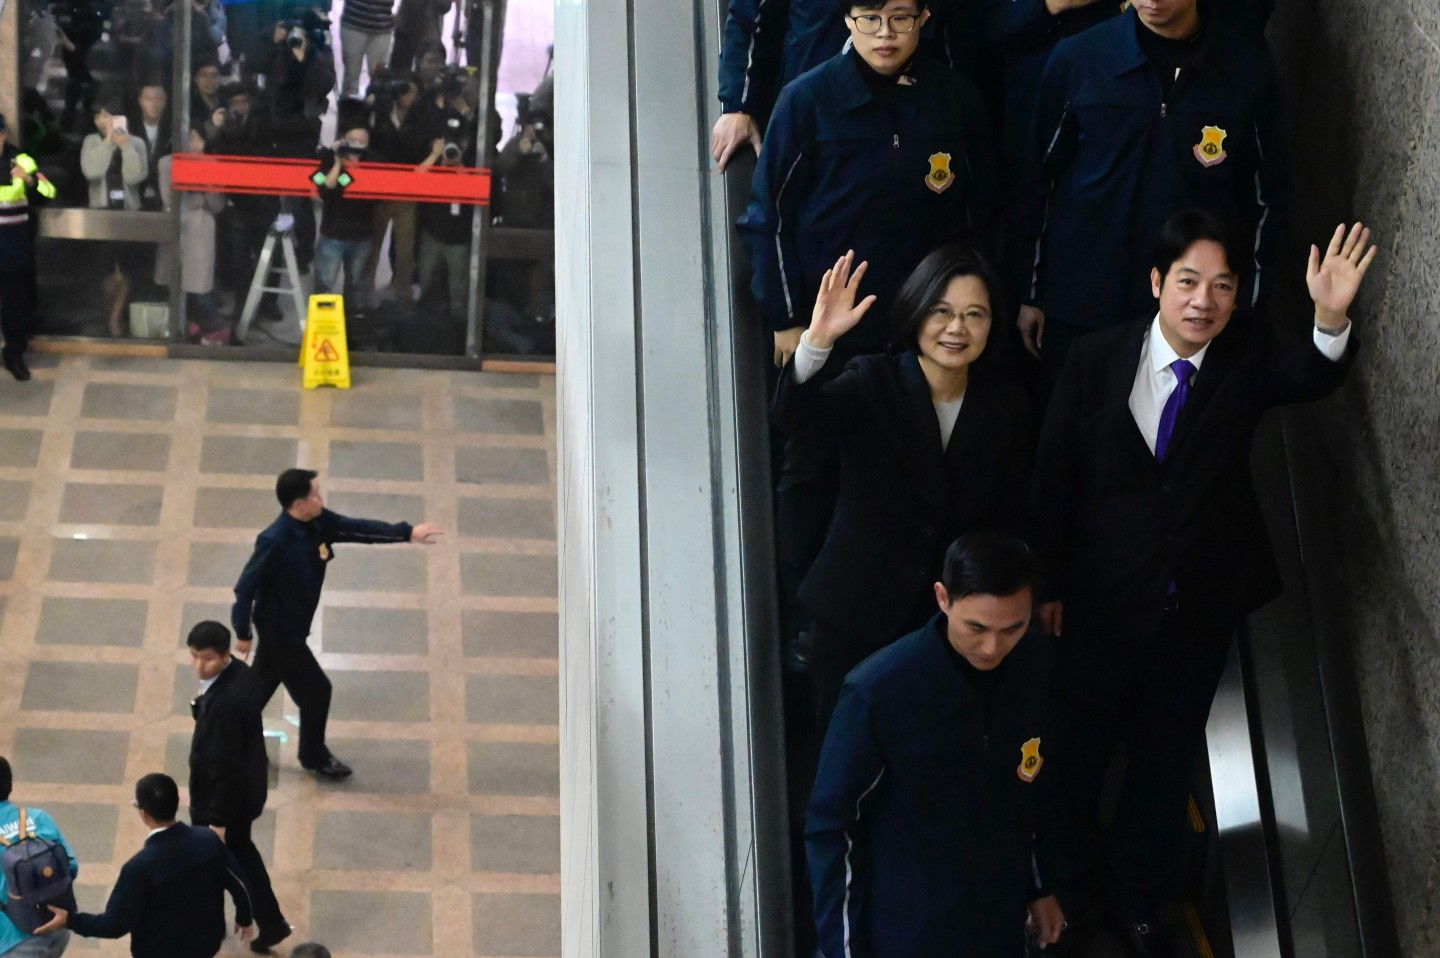 Taiwan's President Tsai Ing-wen (center) and former premier William Lai (centre right) wave after registering as presidential and vice presidential candidates in the upcoming election at the Central Elections Committee in Taipei on November 19, 2019. (Sam Yeh/AFP)